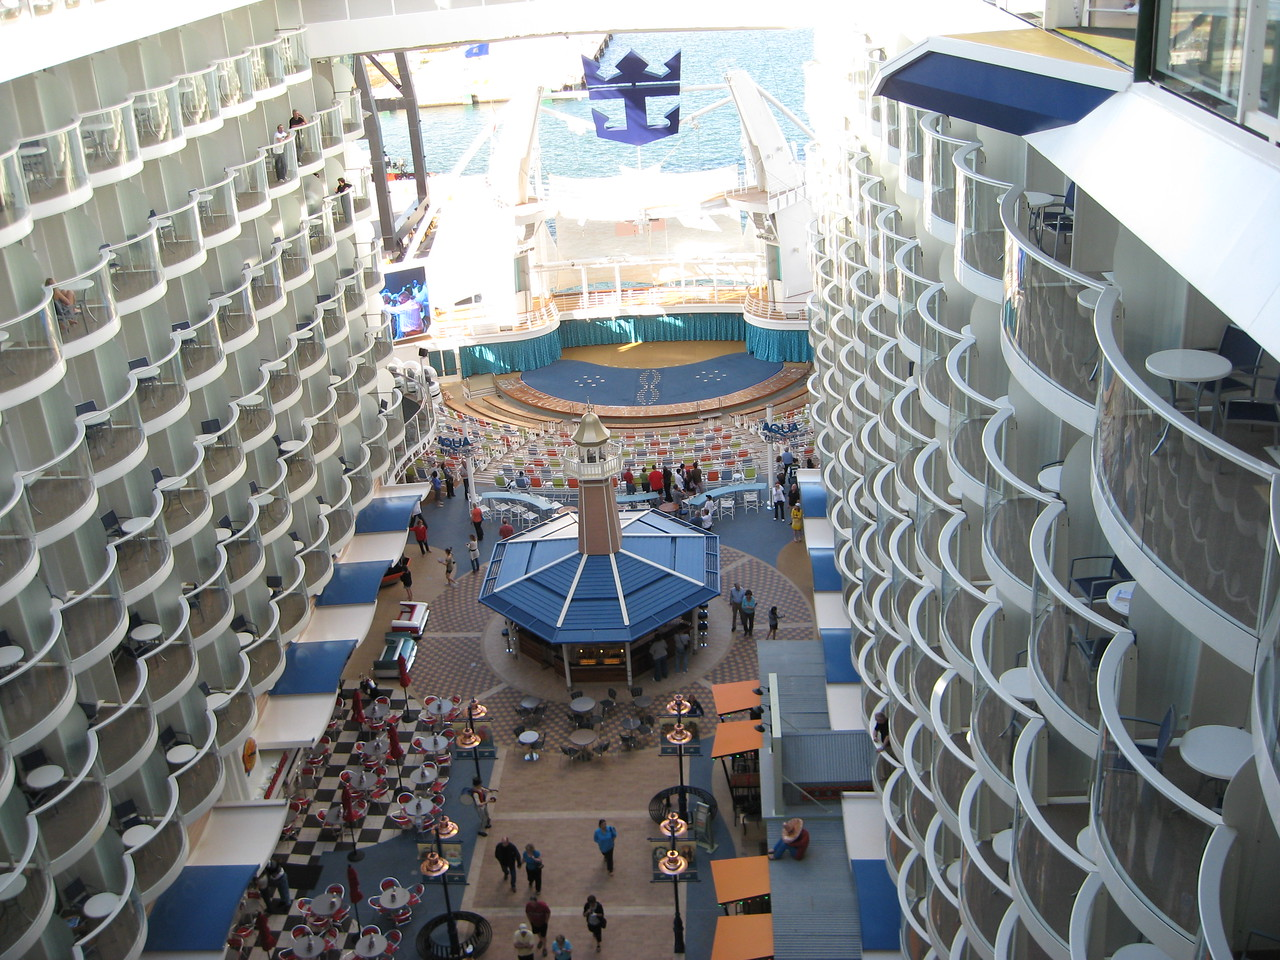 From deck 16, looking down on the Boardwalk on deck 6.  Beyond the Royal Caribbean symbol you can see the sea behind the ship.